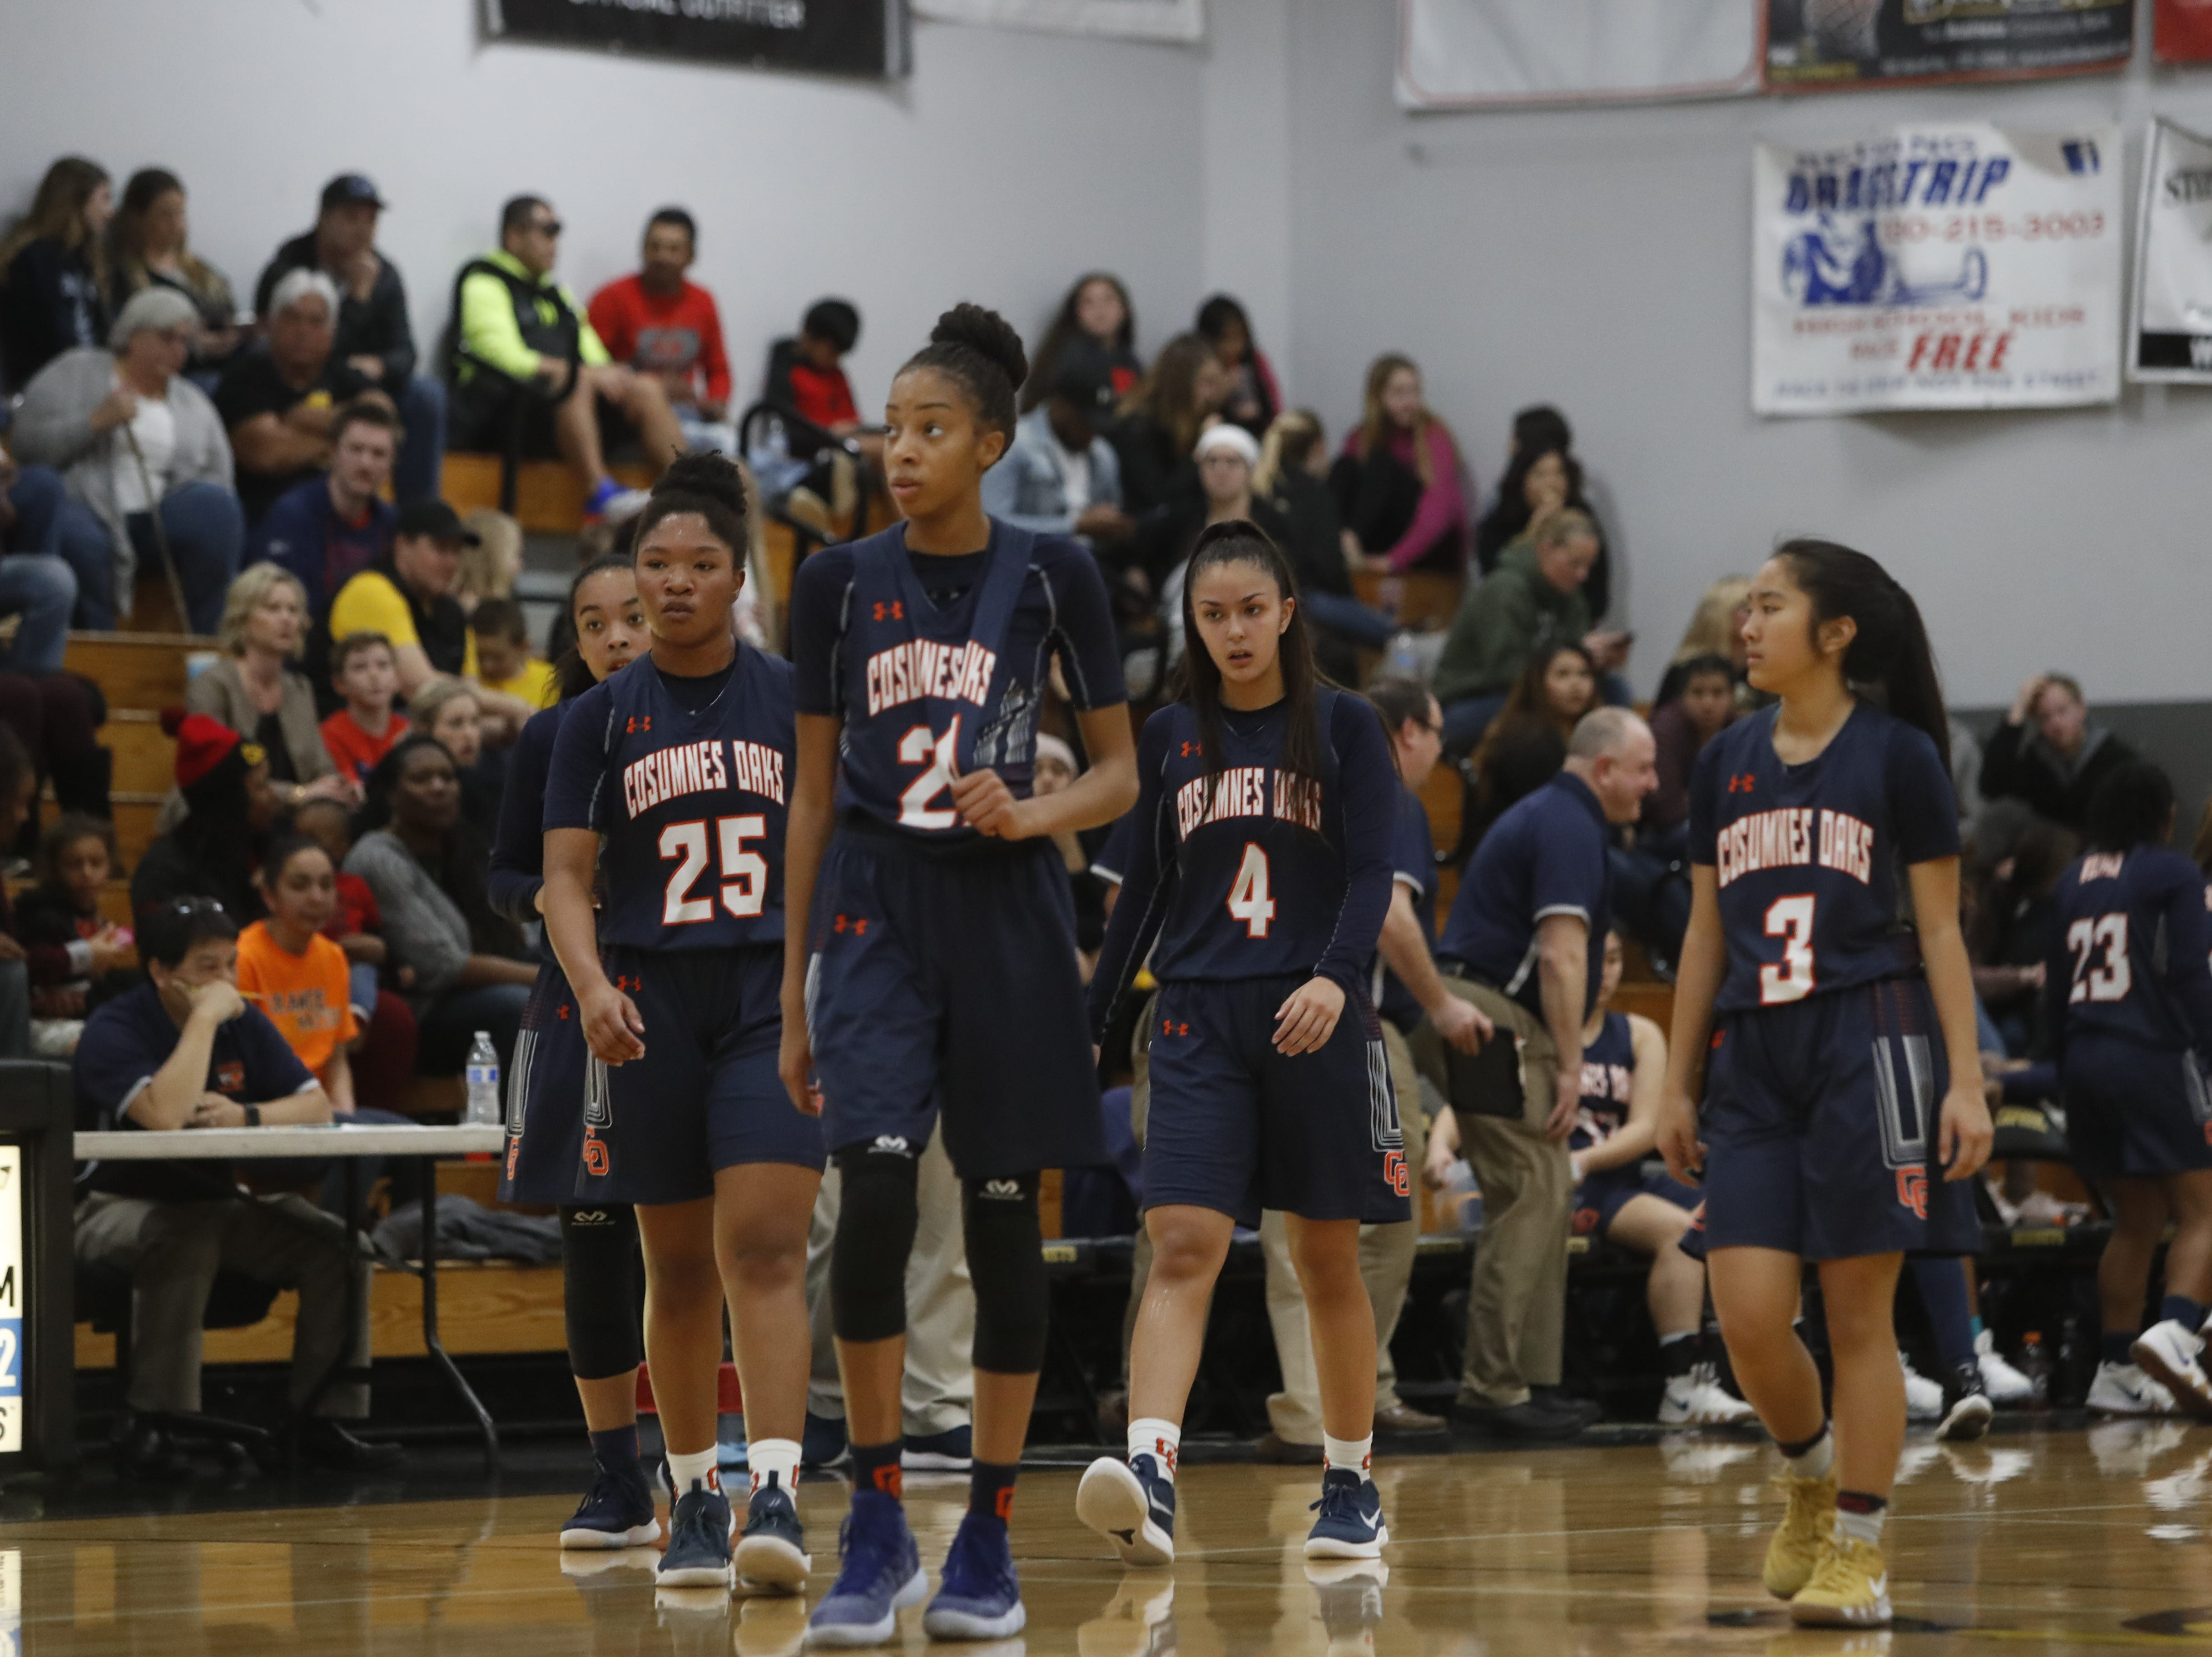 The Enterprise Hornets beat Cosumnes Oaks, 56-49, in the regional semifinals of the Division II state playoffs at Enterprise High on Saturday, March 2.